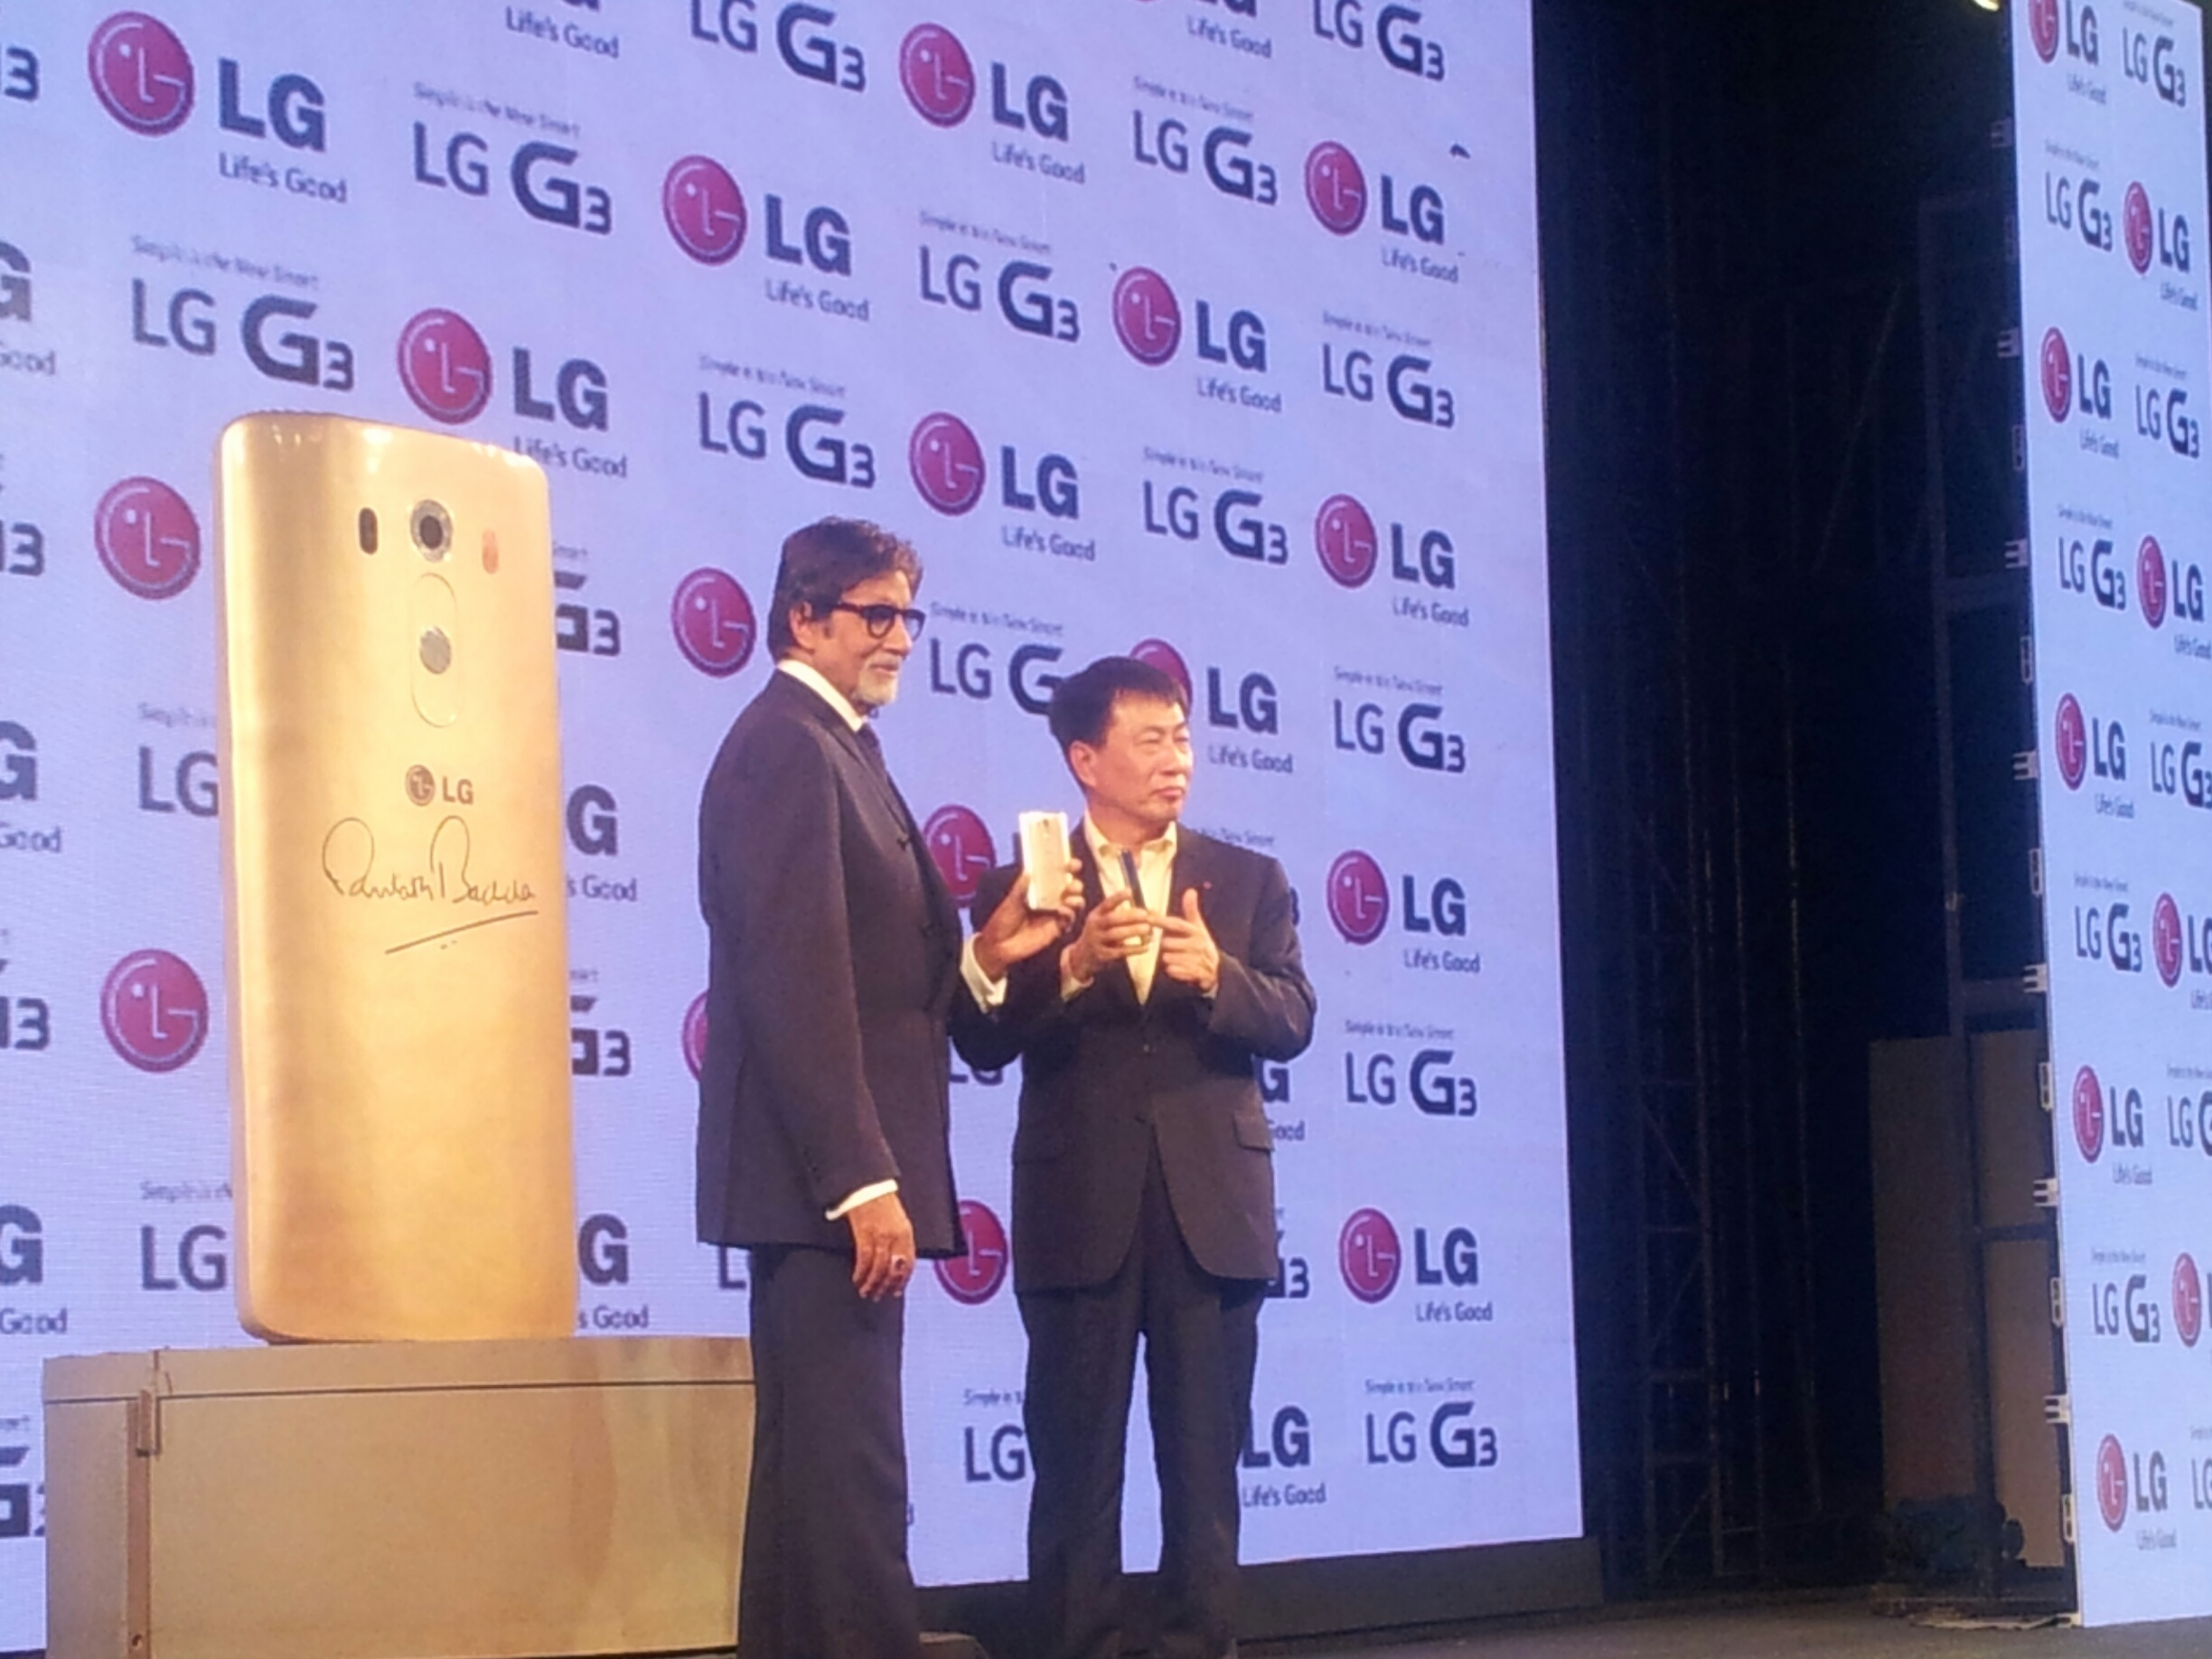 Big B with Lg G3